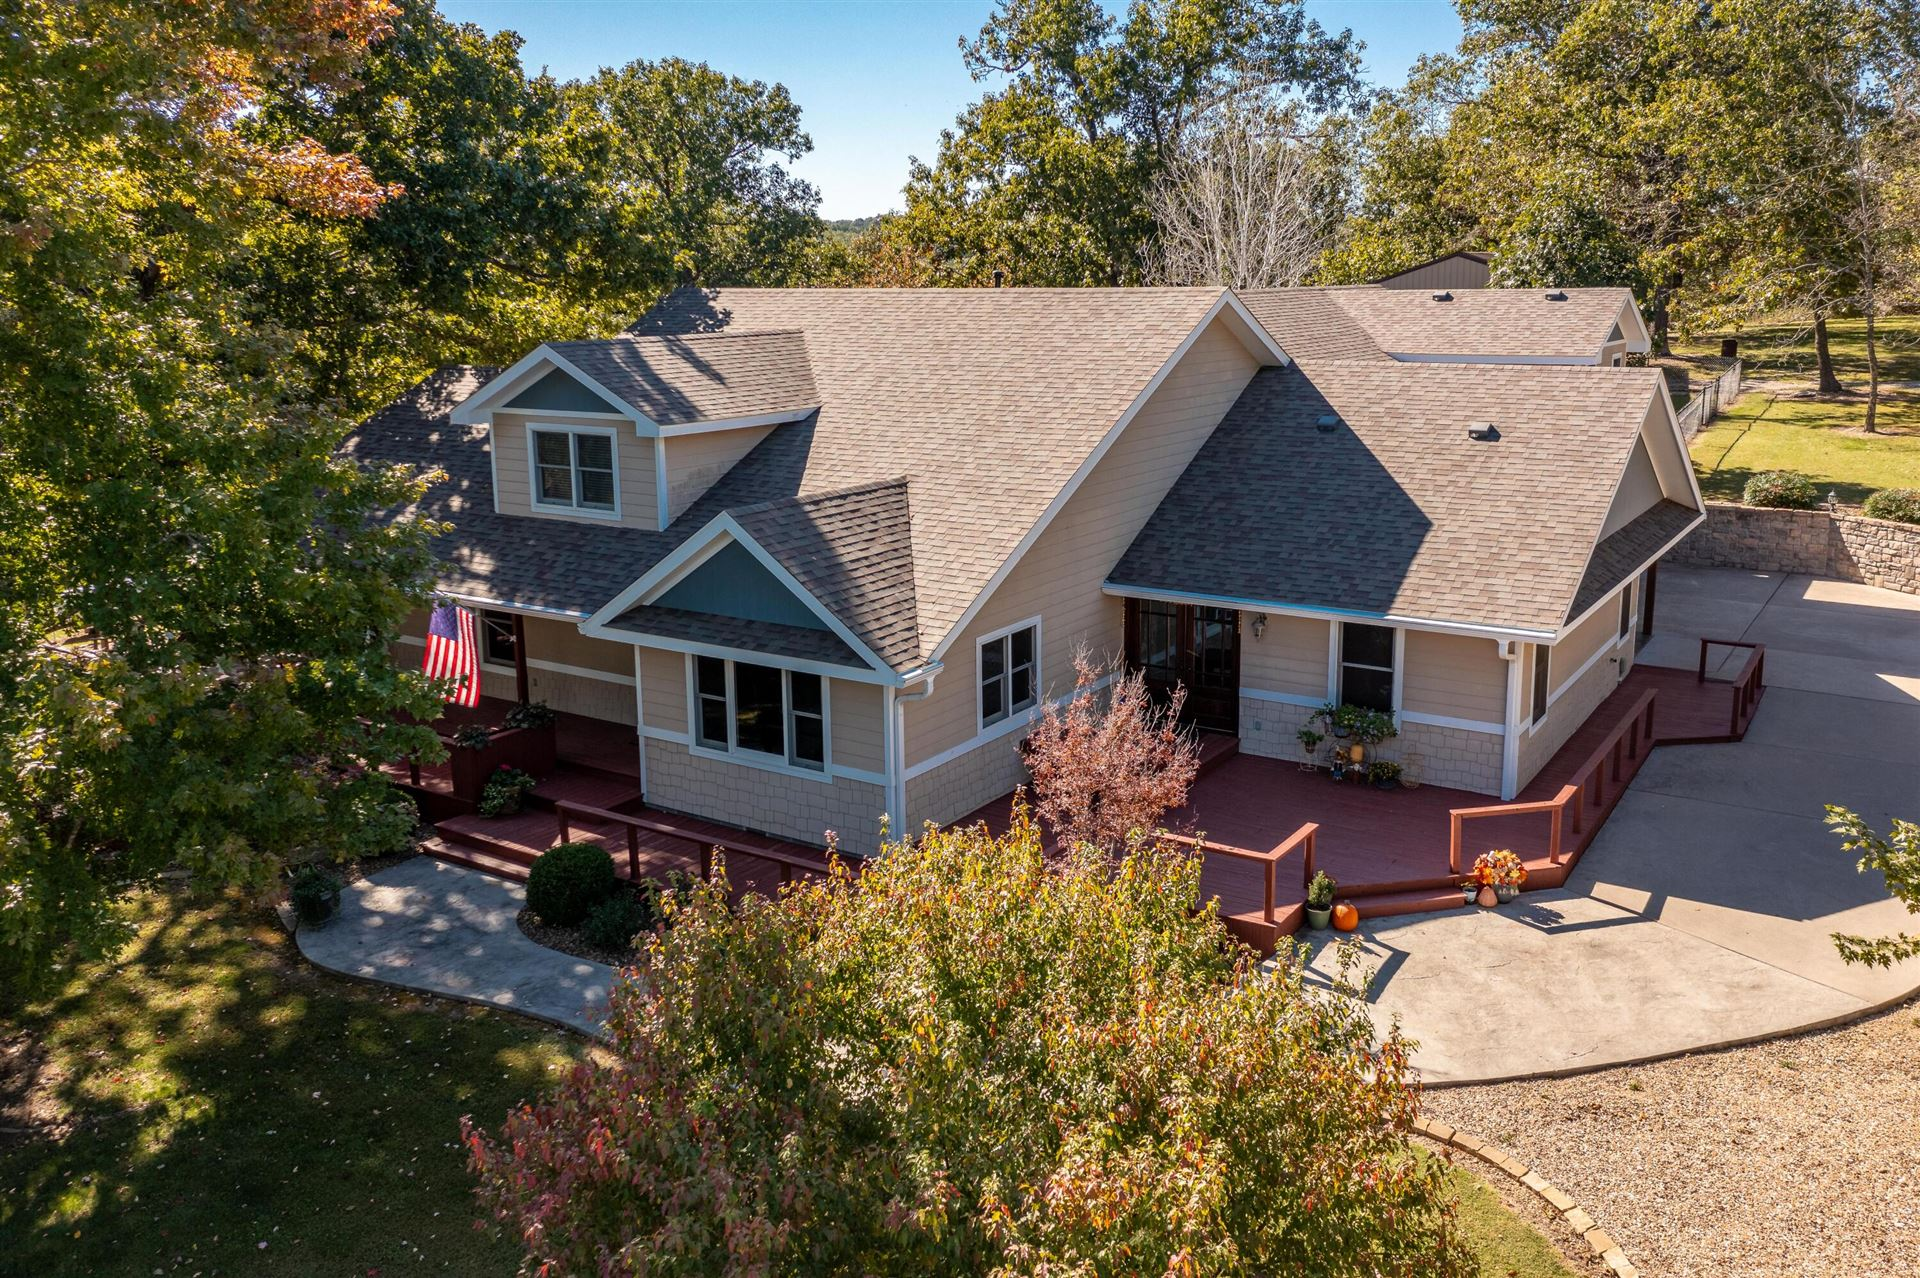 Photo of 3151 Eagle Road, Anderson, MO 64831 (MLS # 60203706)